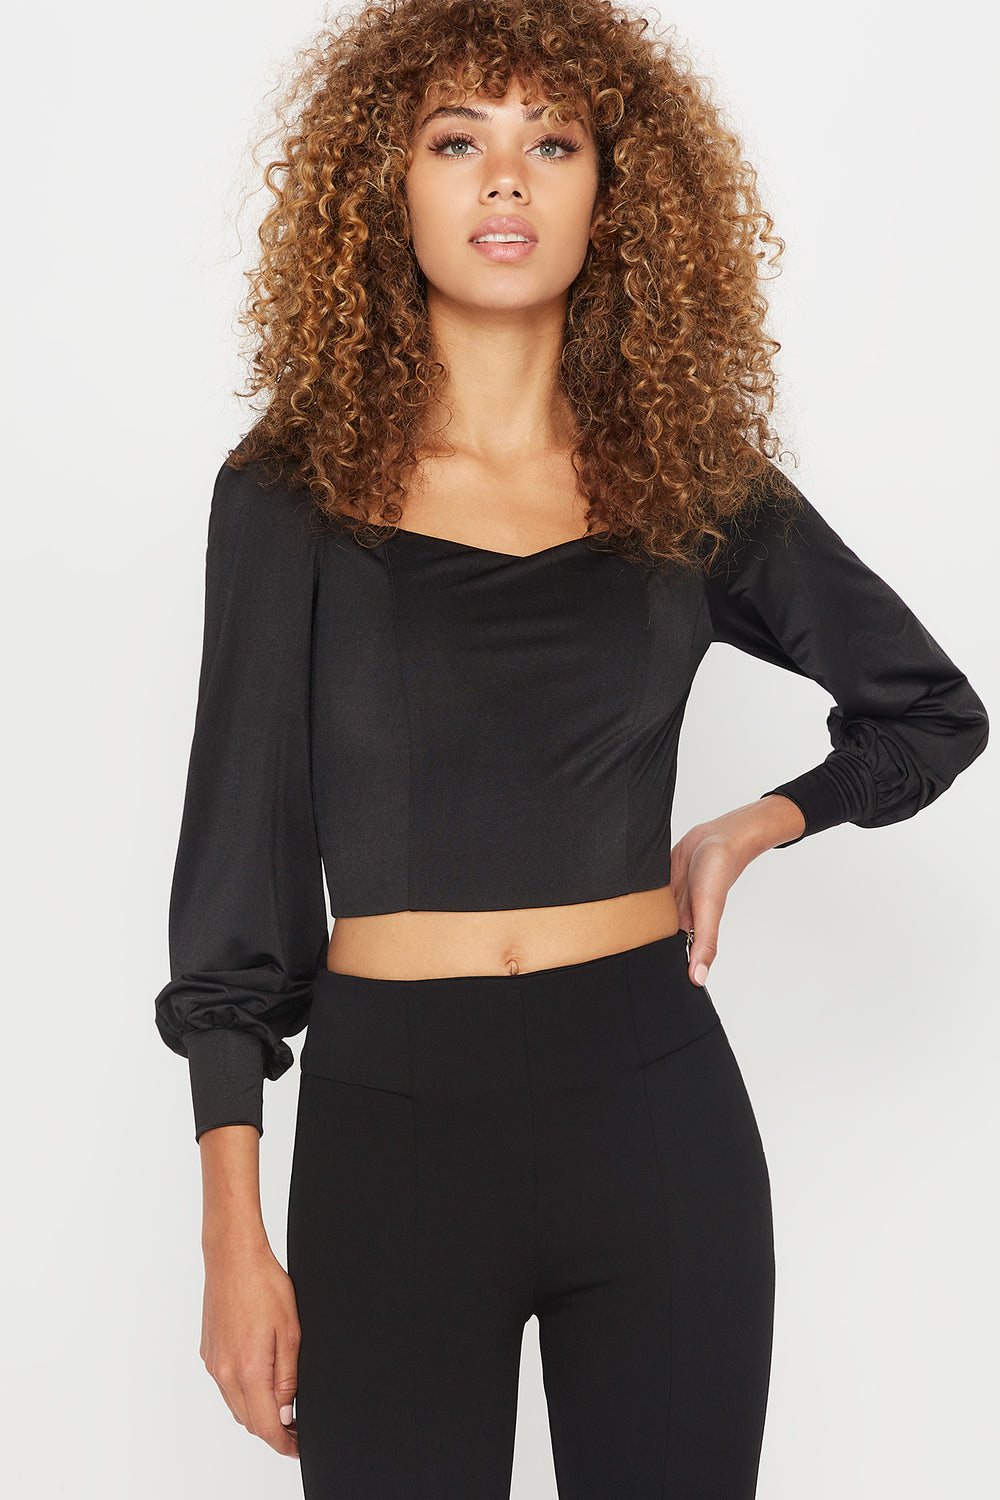 Sweetheart Neck Cropped Long Sleeve Top Black